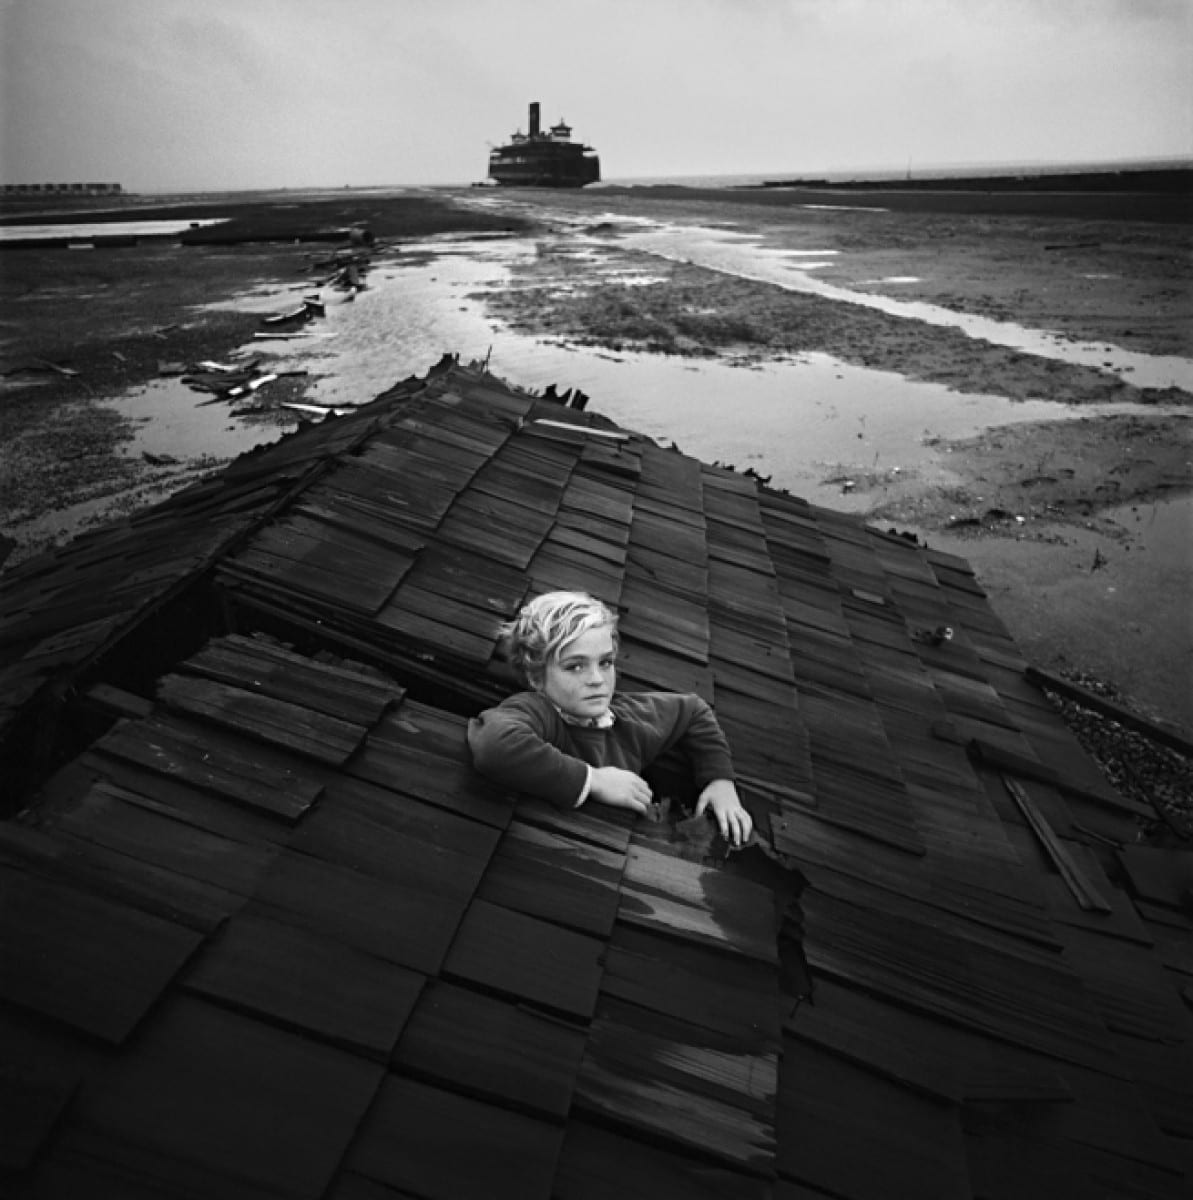 Boy in Flood Dream, Ocean City, New Jersey, 1972 © Arthur Tress Photography